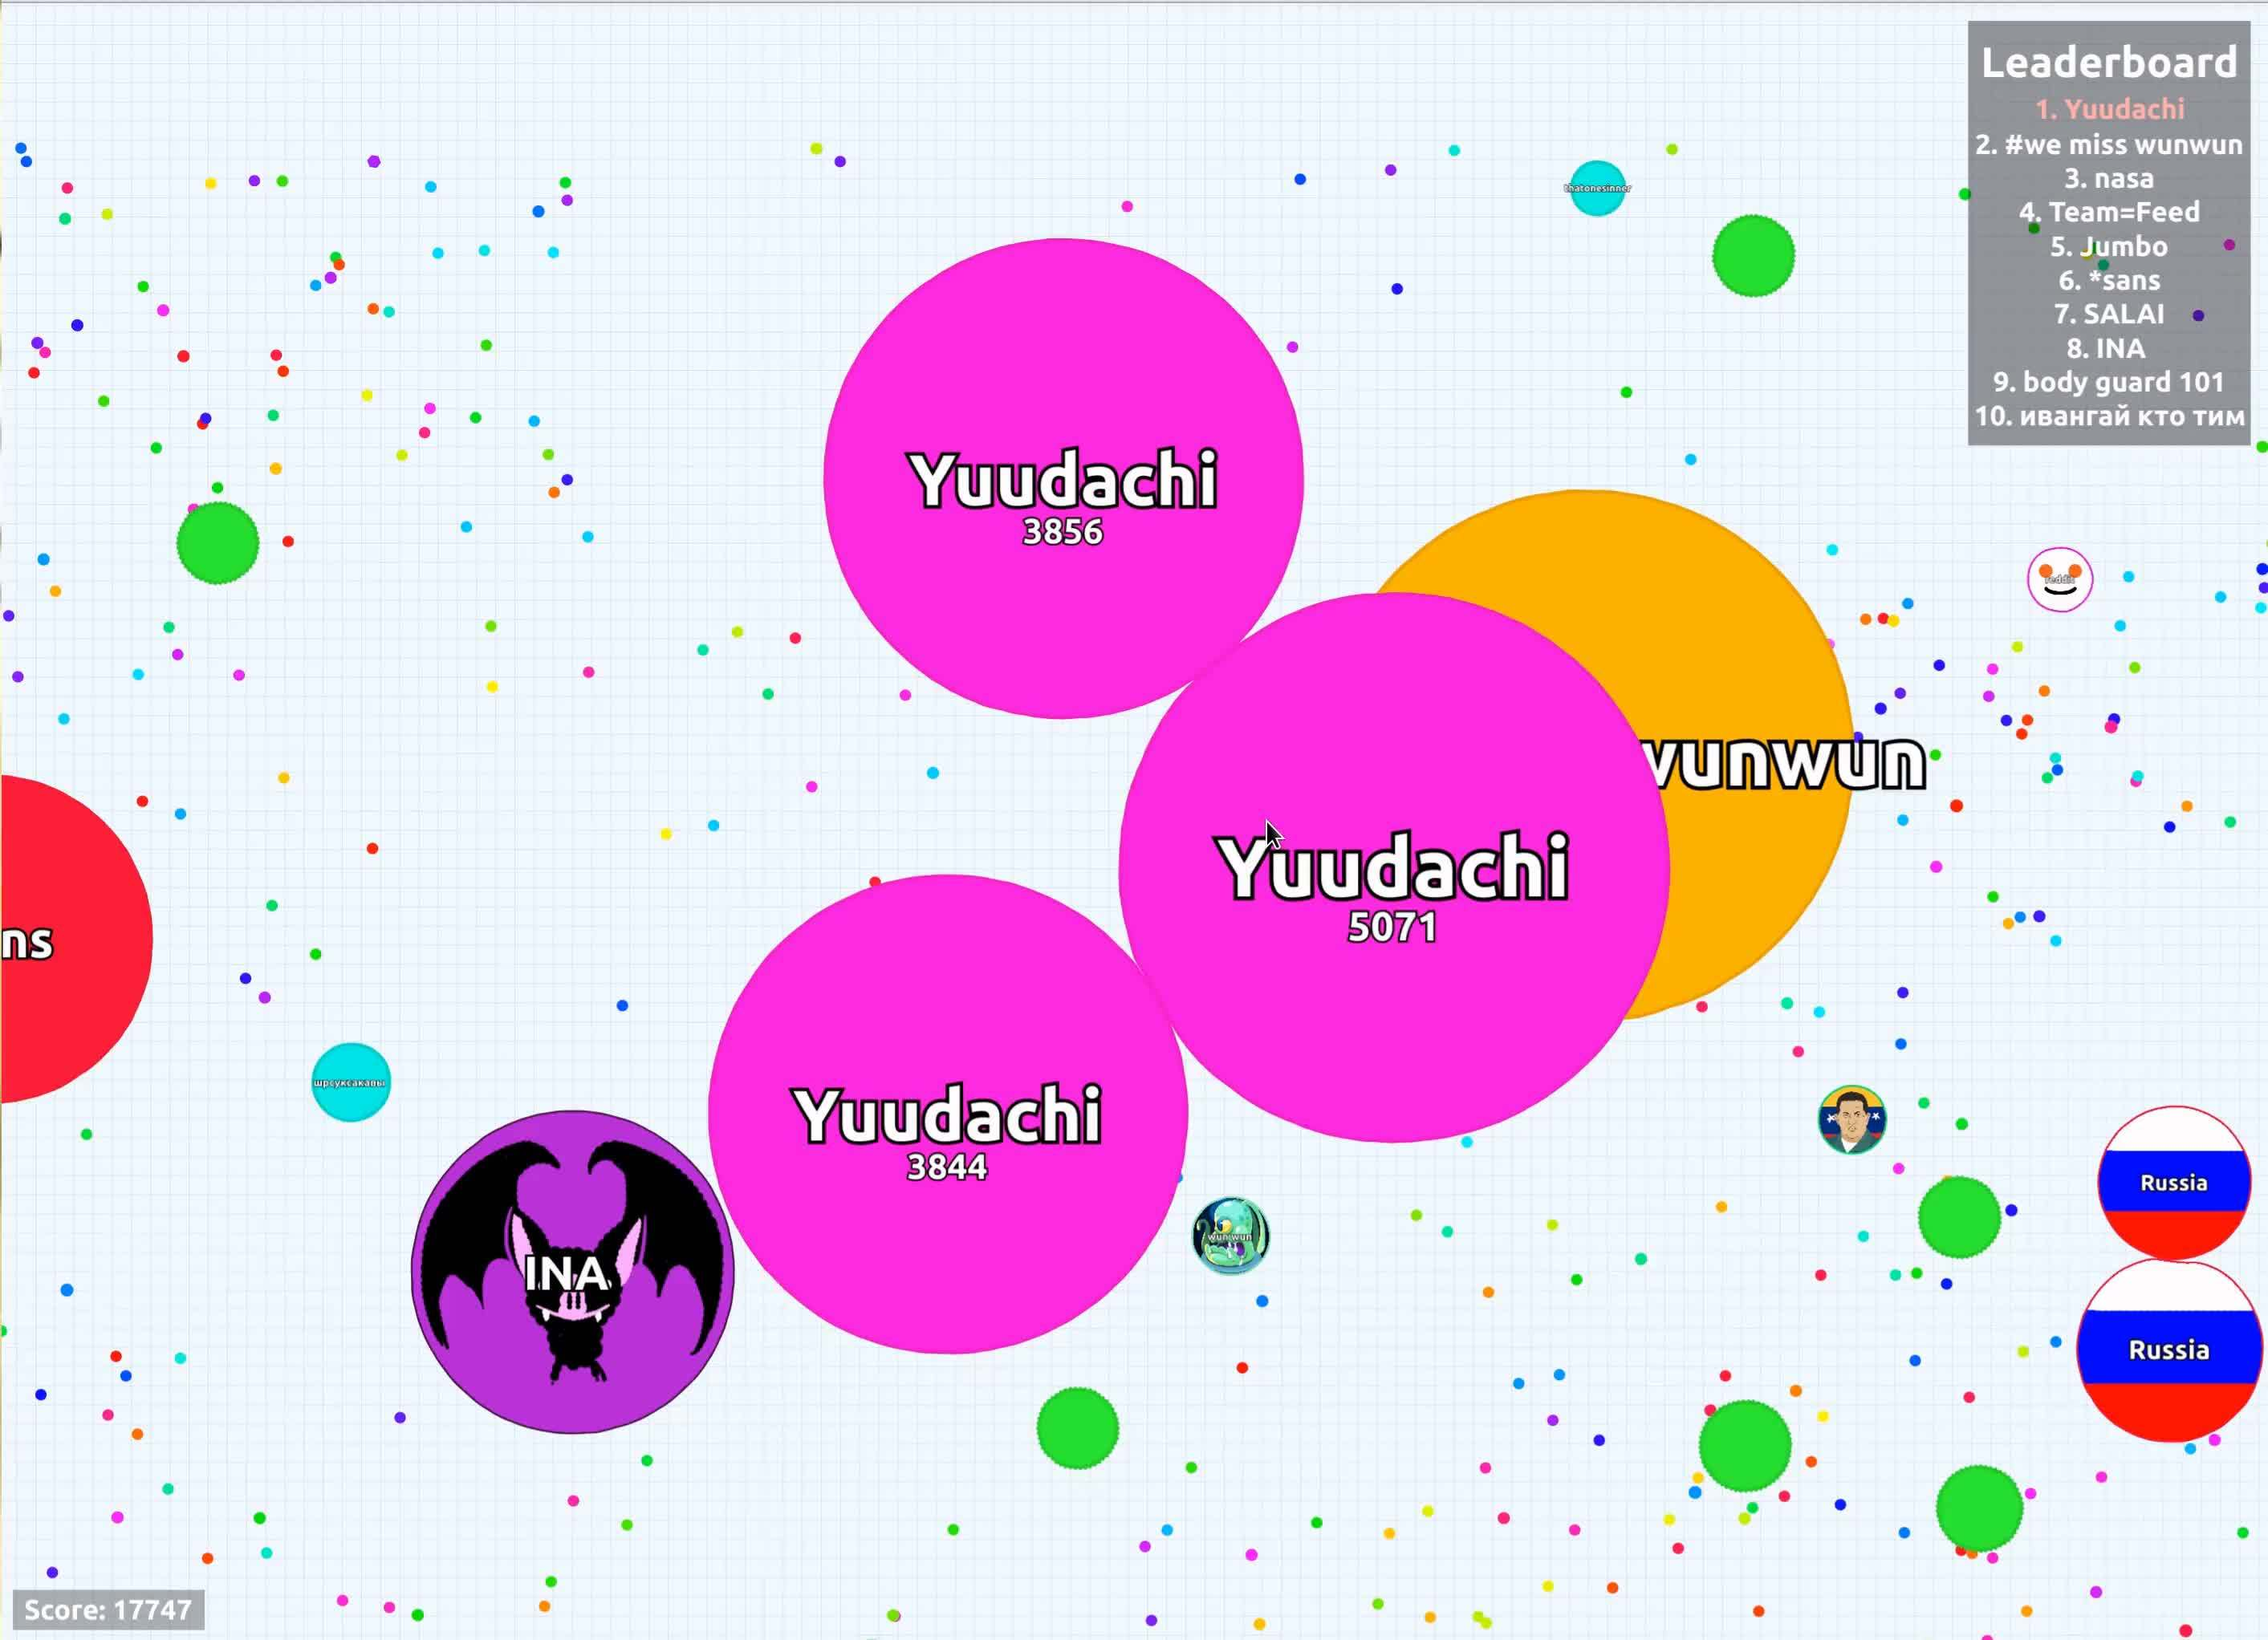 agario, Self-feeding didn't work, so take THIS! GIFs